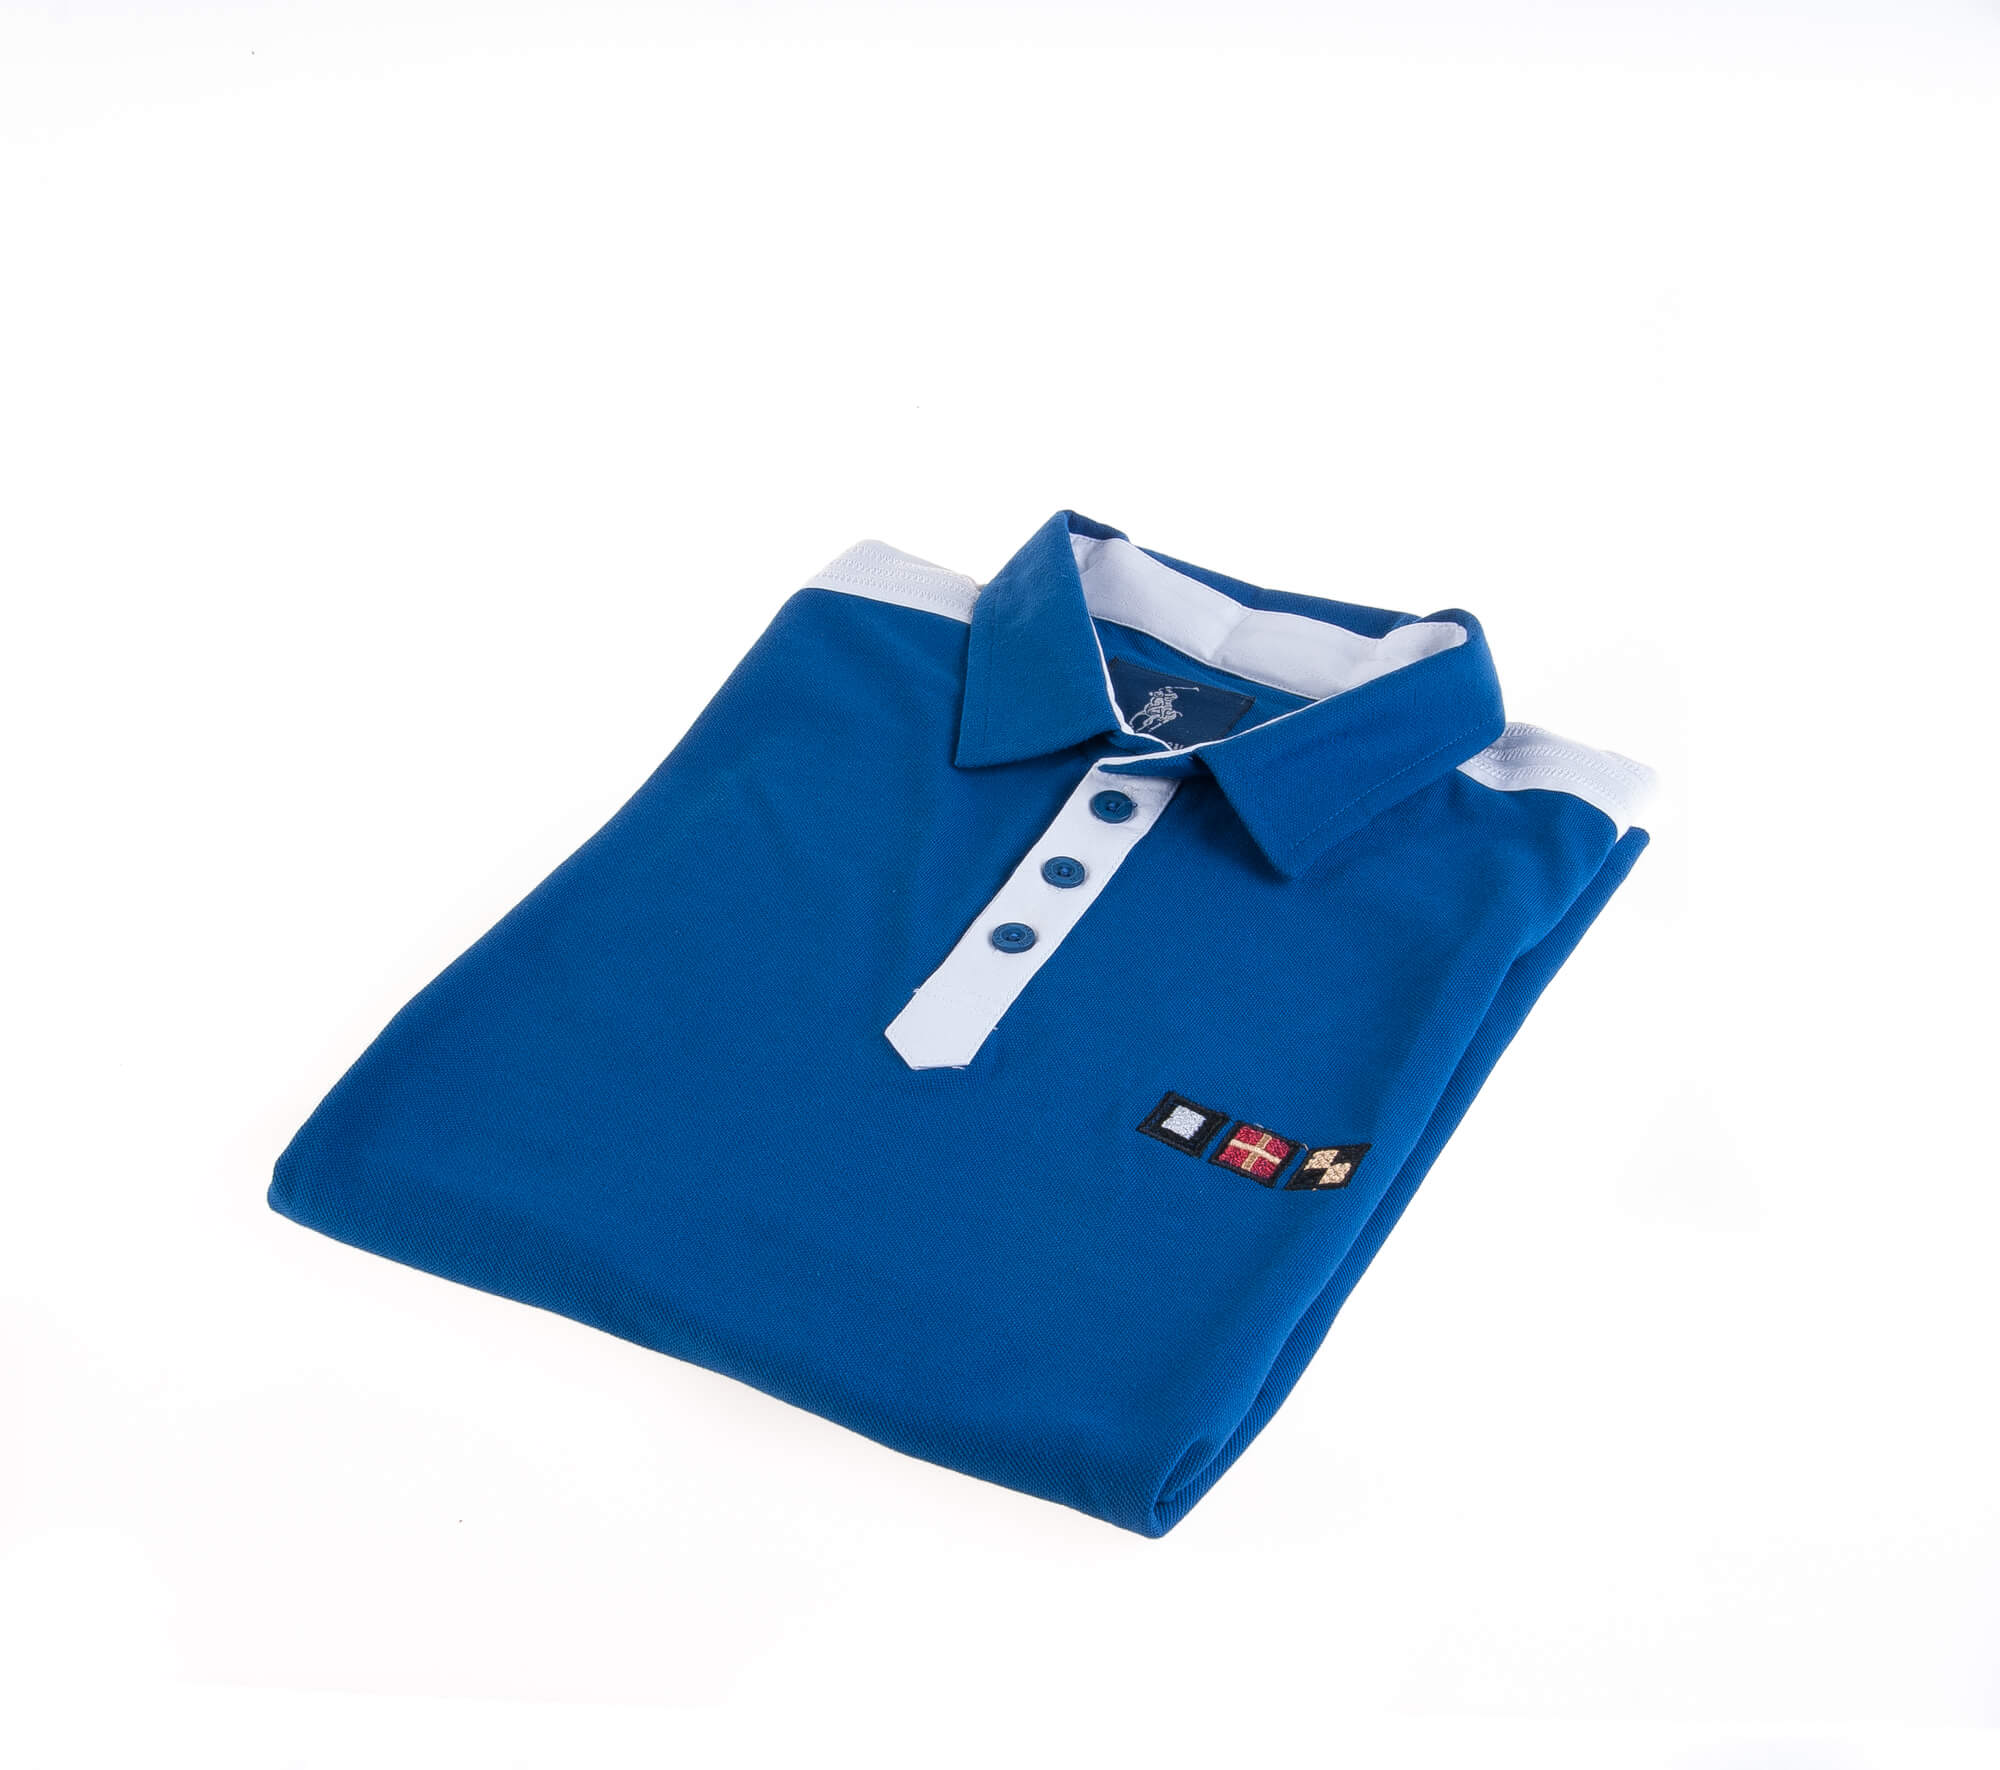 polo shirt (39 of 39)